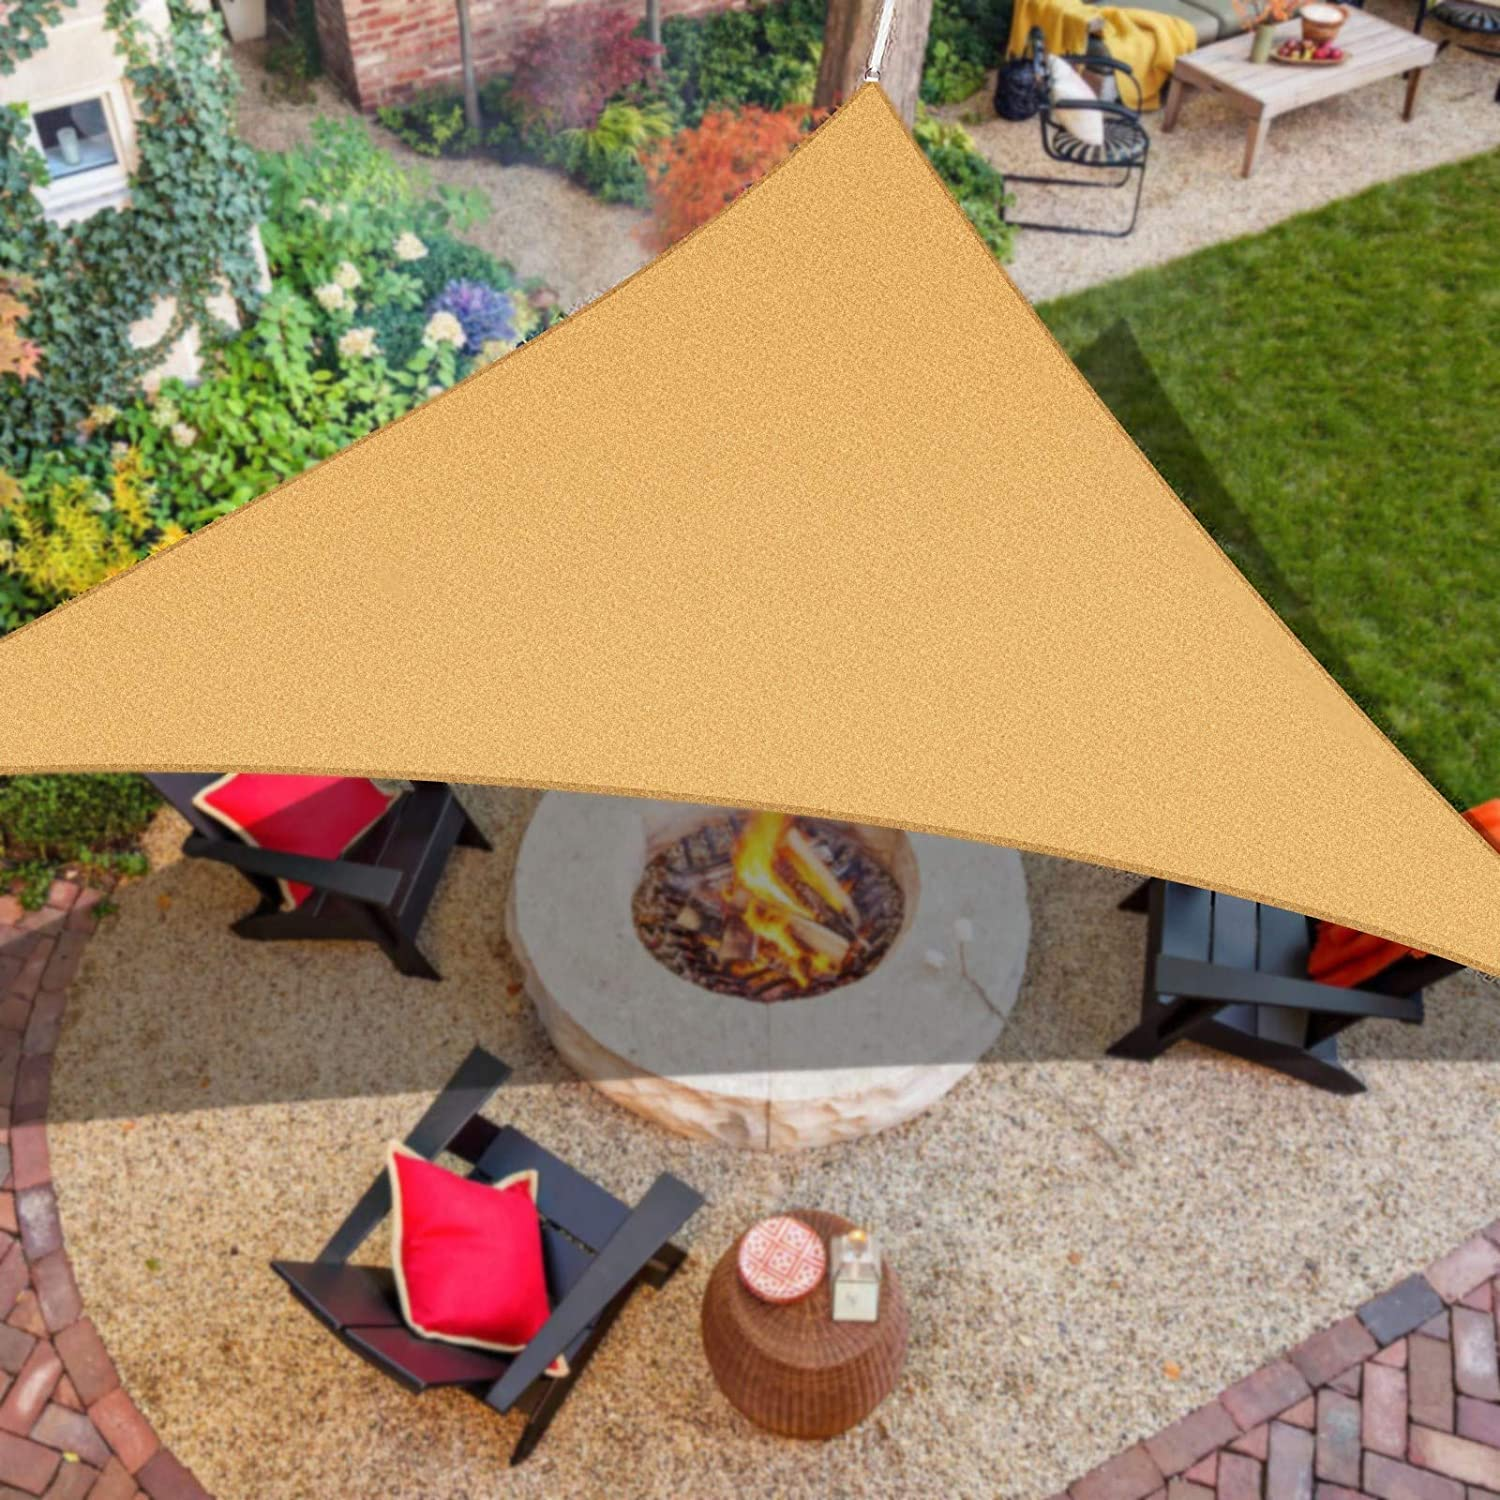 """iCOVER Sun Shade Sail Canopy, 185GSM Fabric Permeable Pergolas Top Cover, for Outdoor Patio Lawn Garden Backyard Awning, 16'5""""x16'5""""x16'5"""", Sand"""